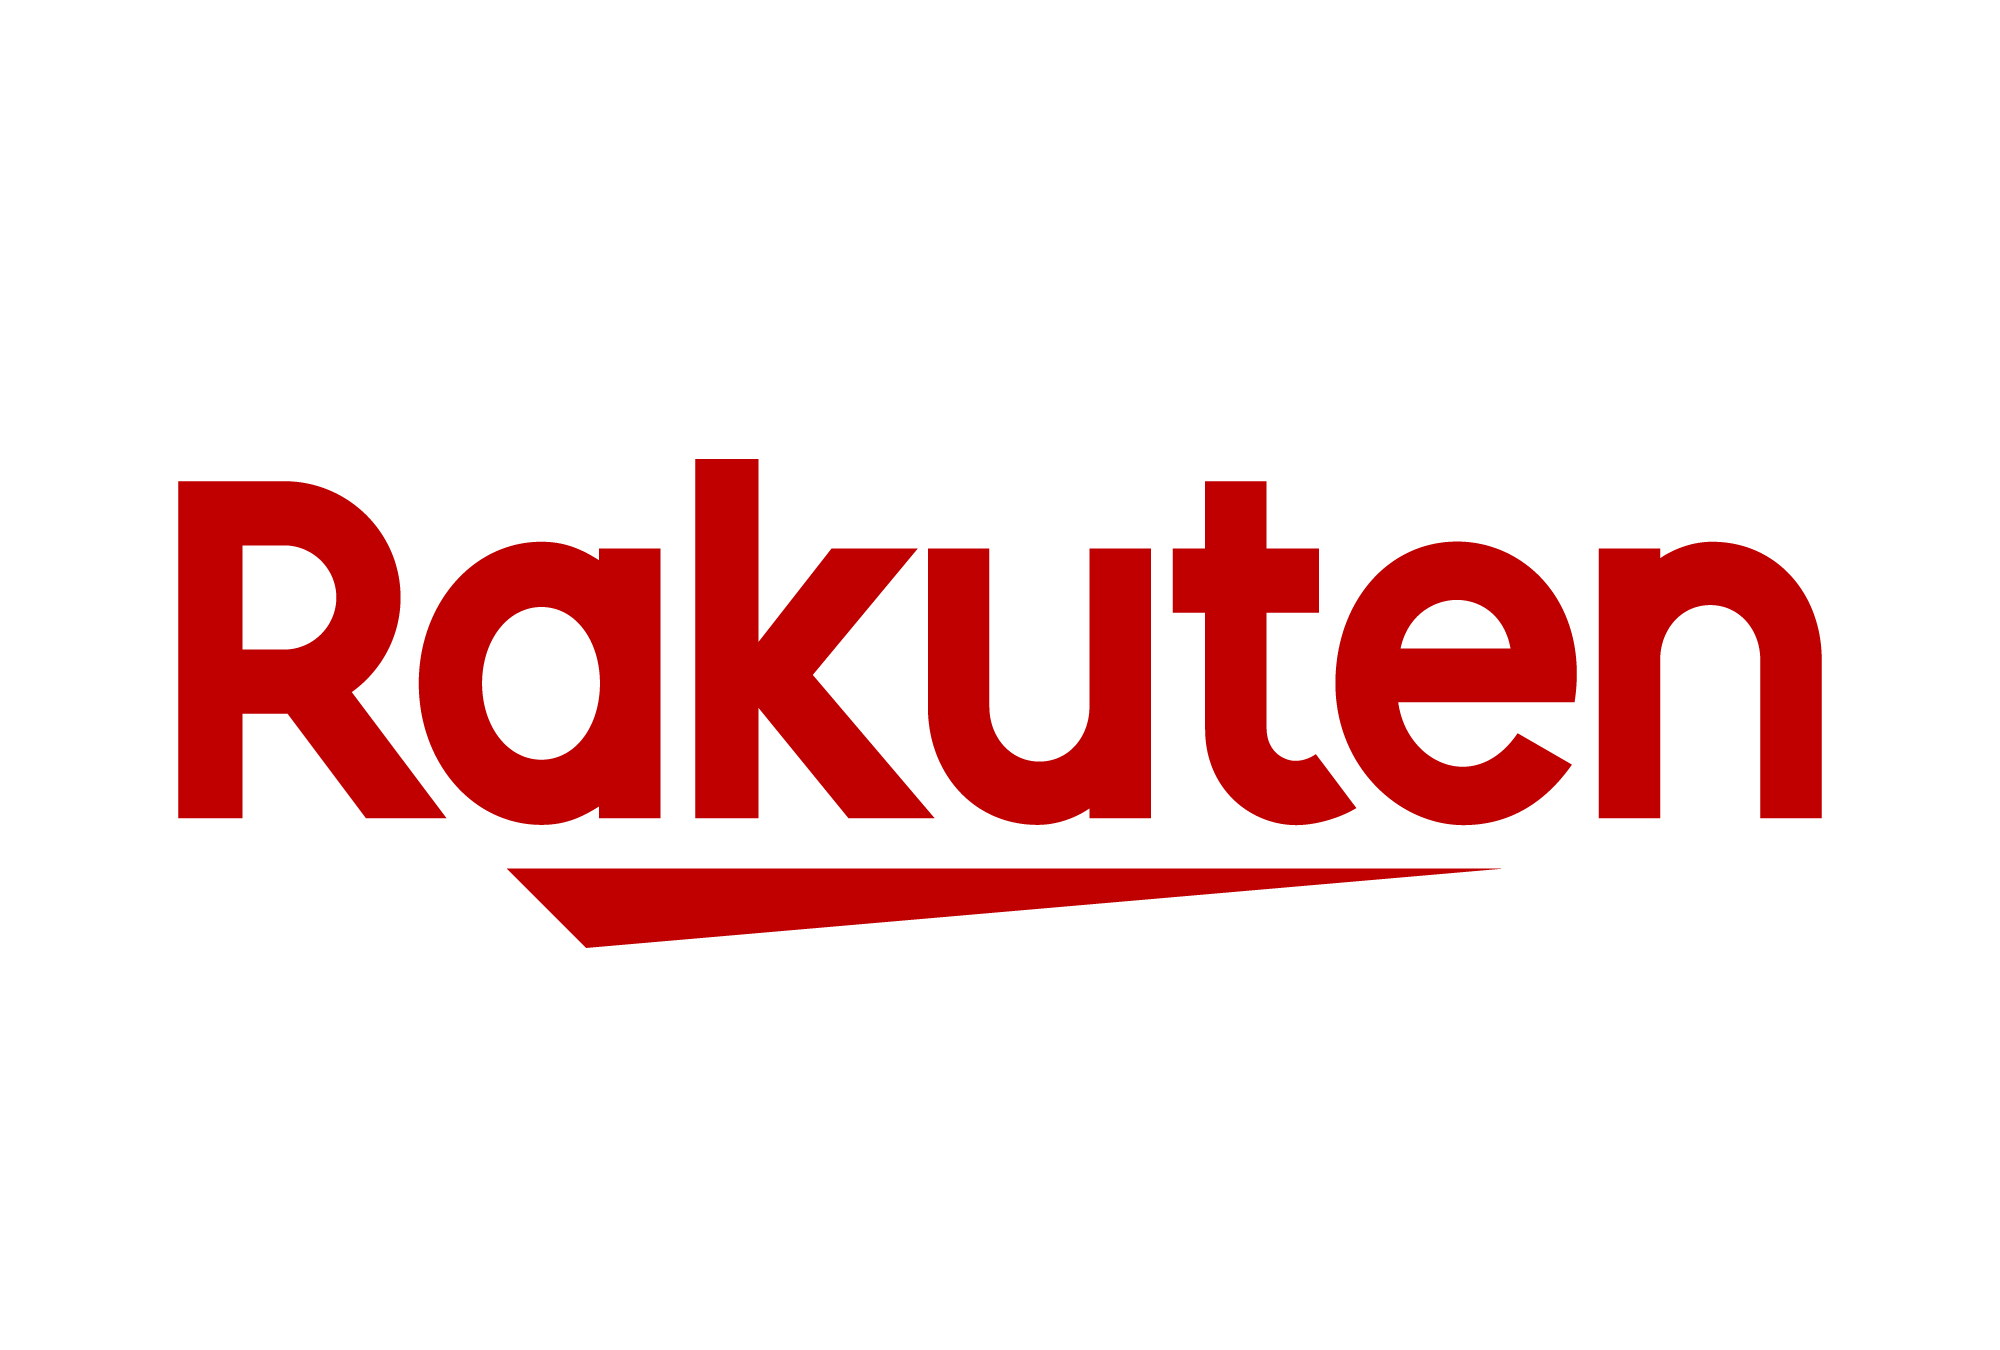 """The new brand logo incorporates the Japanese character for """"one"""", which symbolizes this new start and Rakuten's ambitions to take on new challenges."""